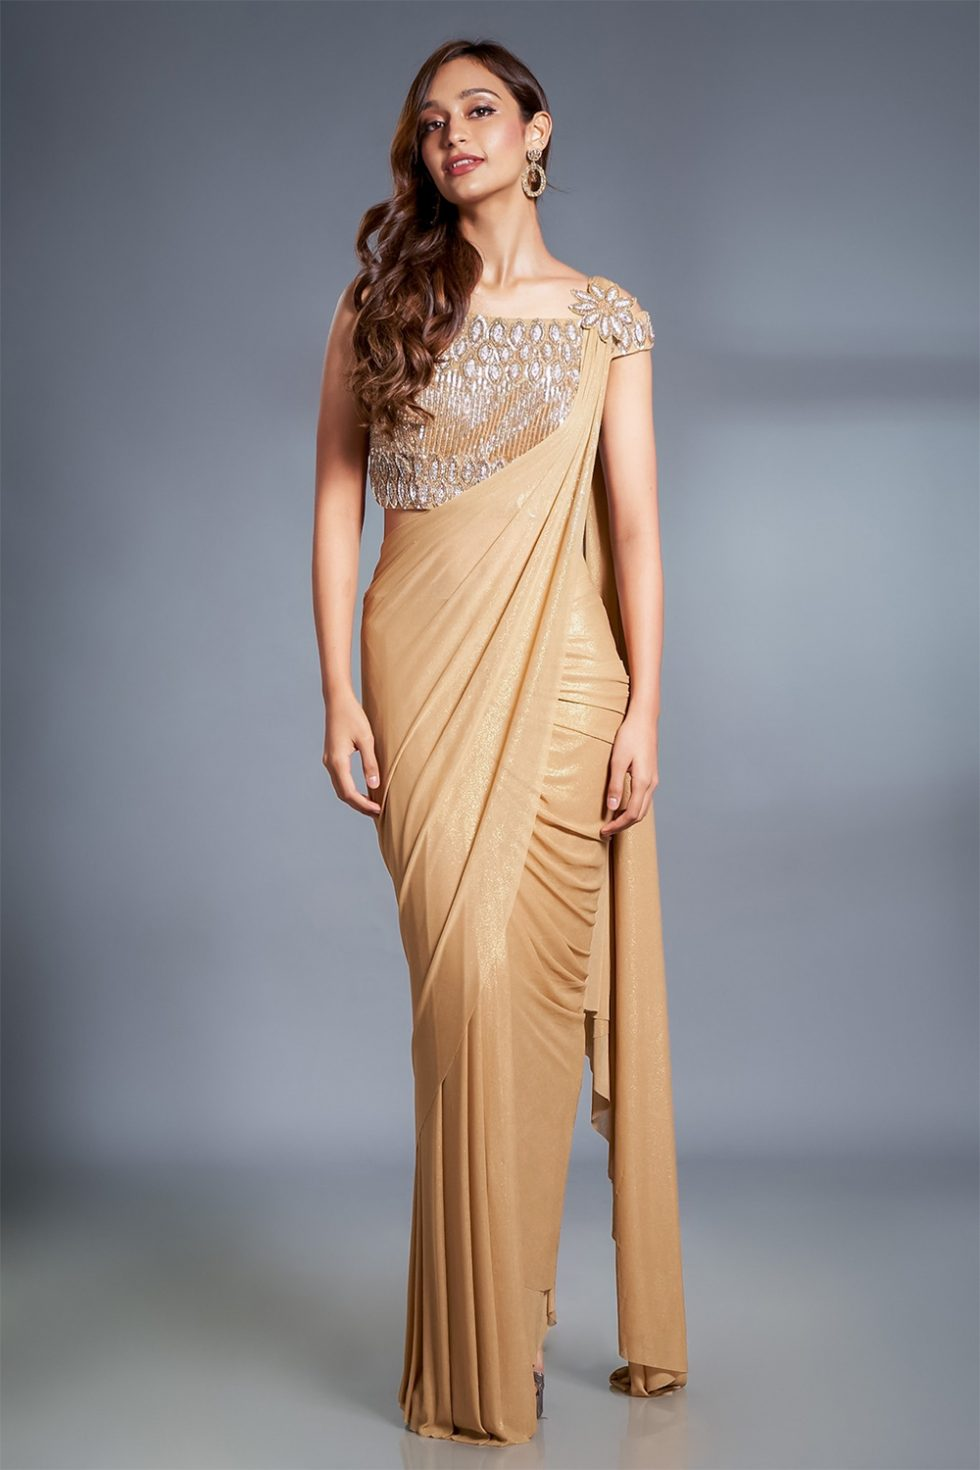 Shimmery gold pre stitched draped saree with a matching hand embroidered off the shoulder cut out back blouse and attached embroidered broach.